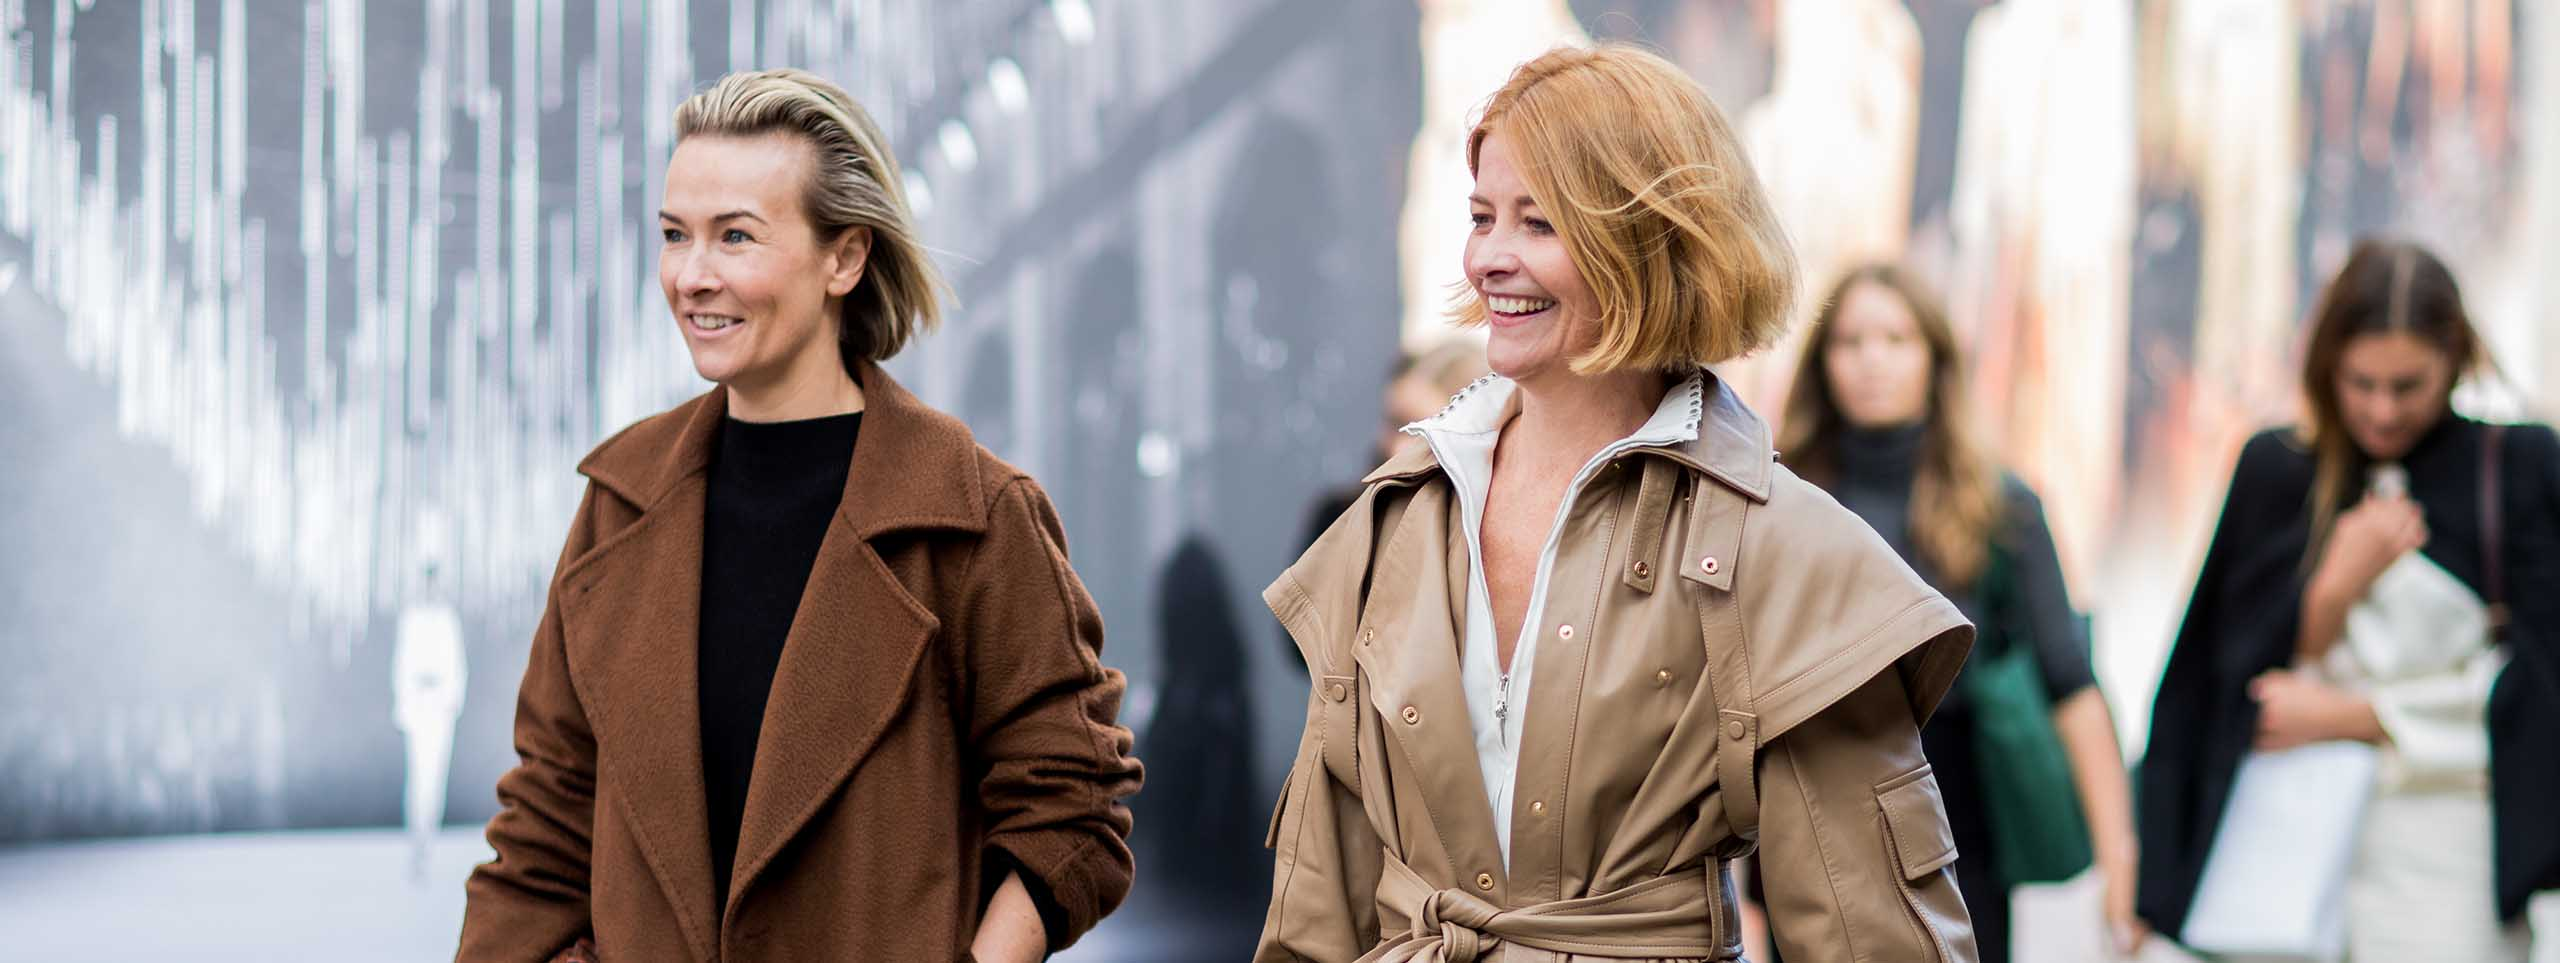 Two smiling older women with trendy hairstyles and coats